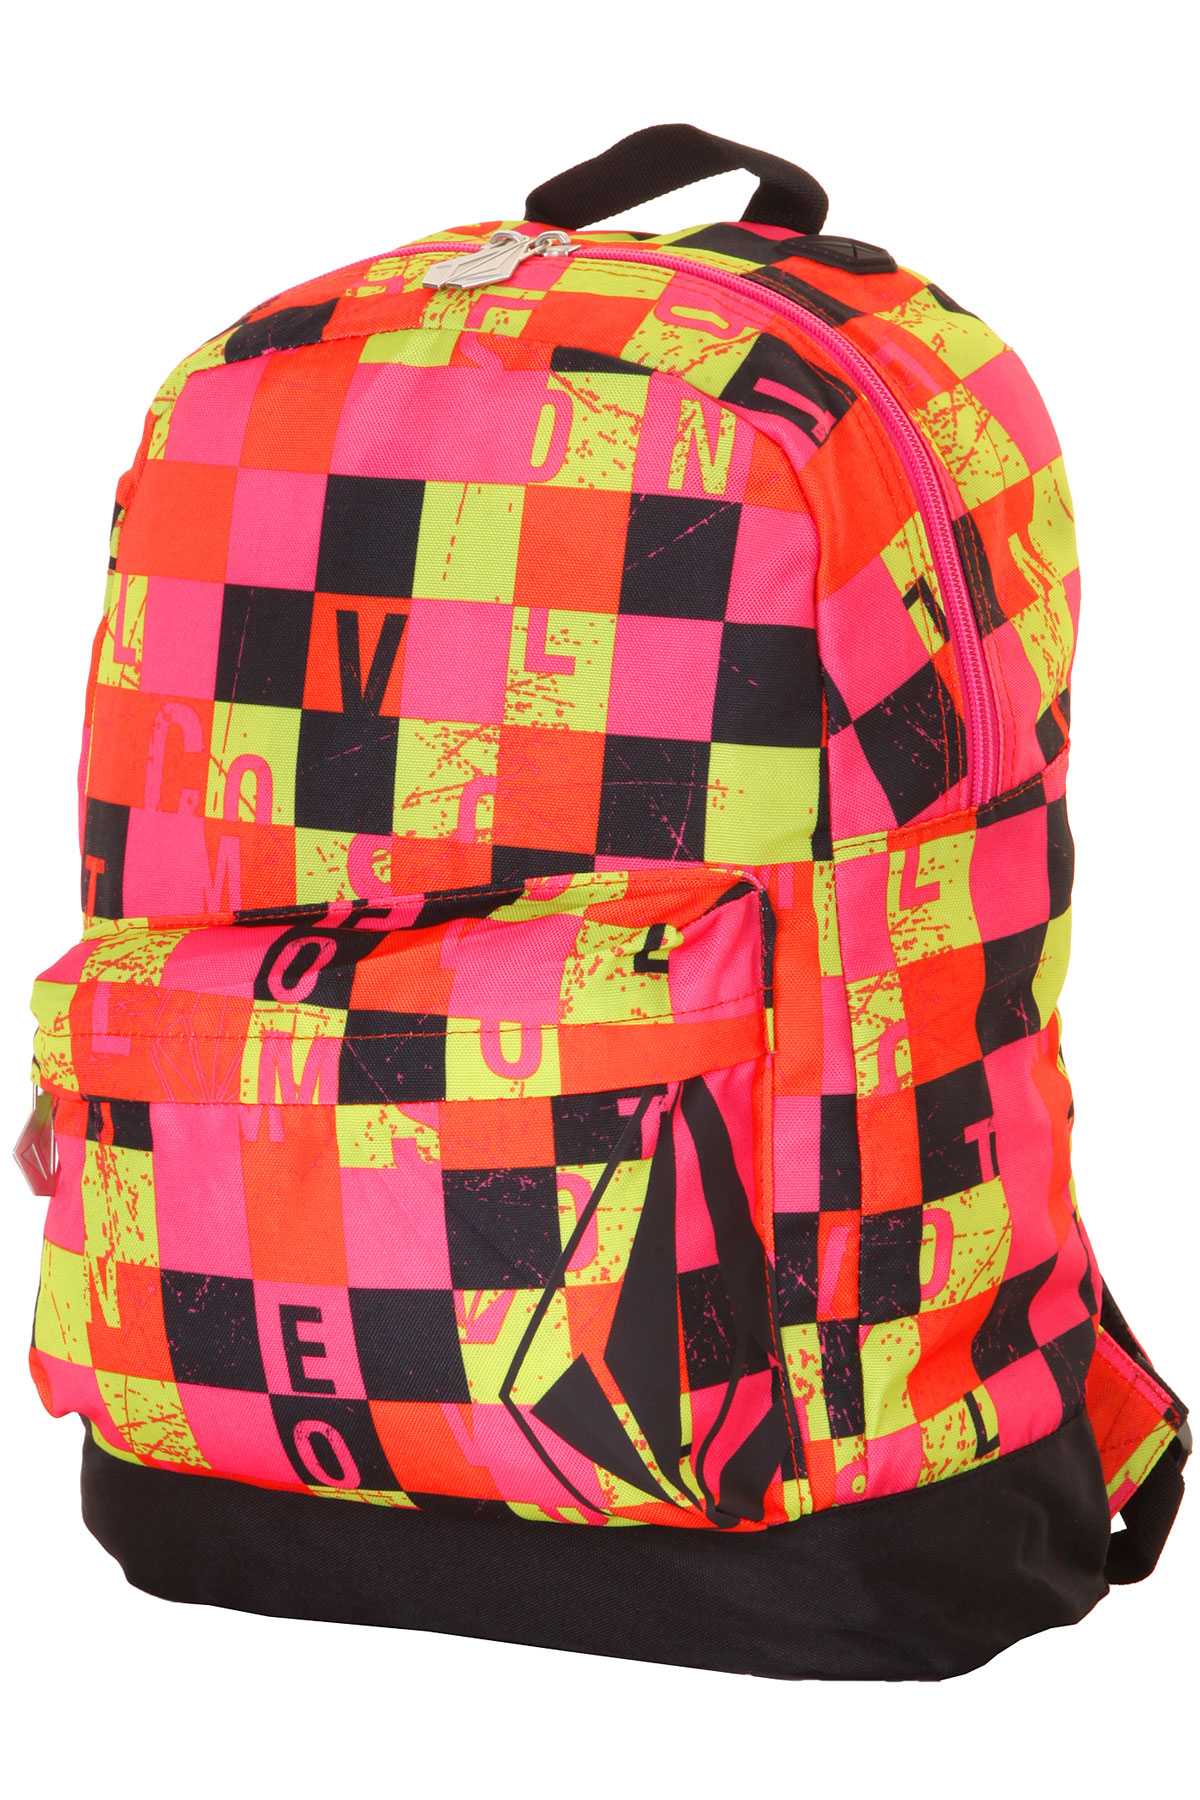 Fashionable Backpacks For School sxl6m2h6